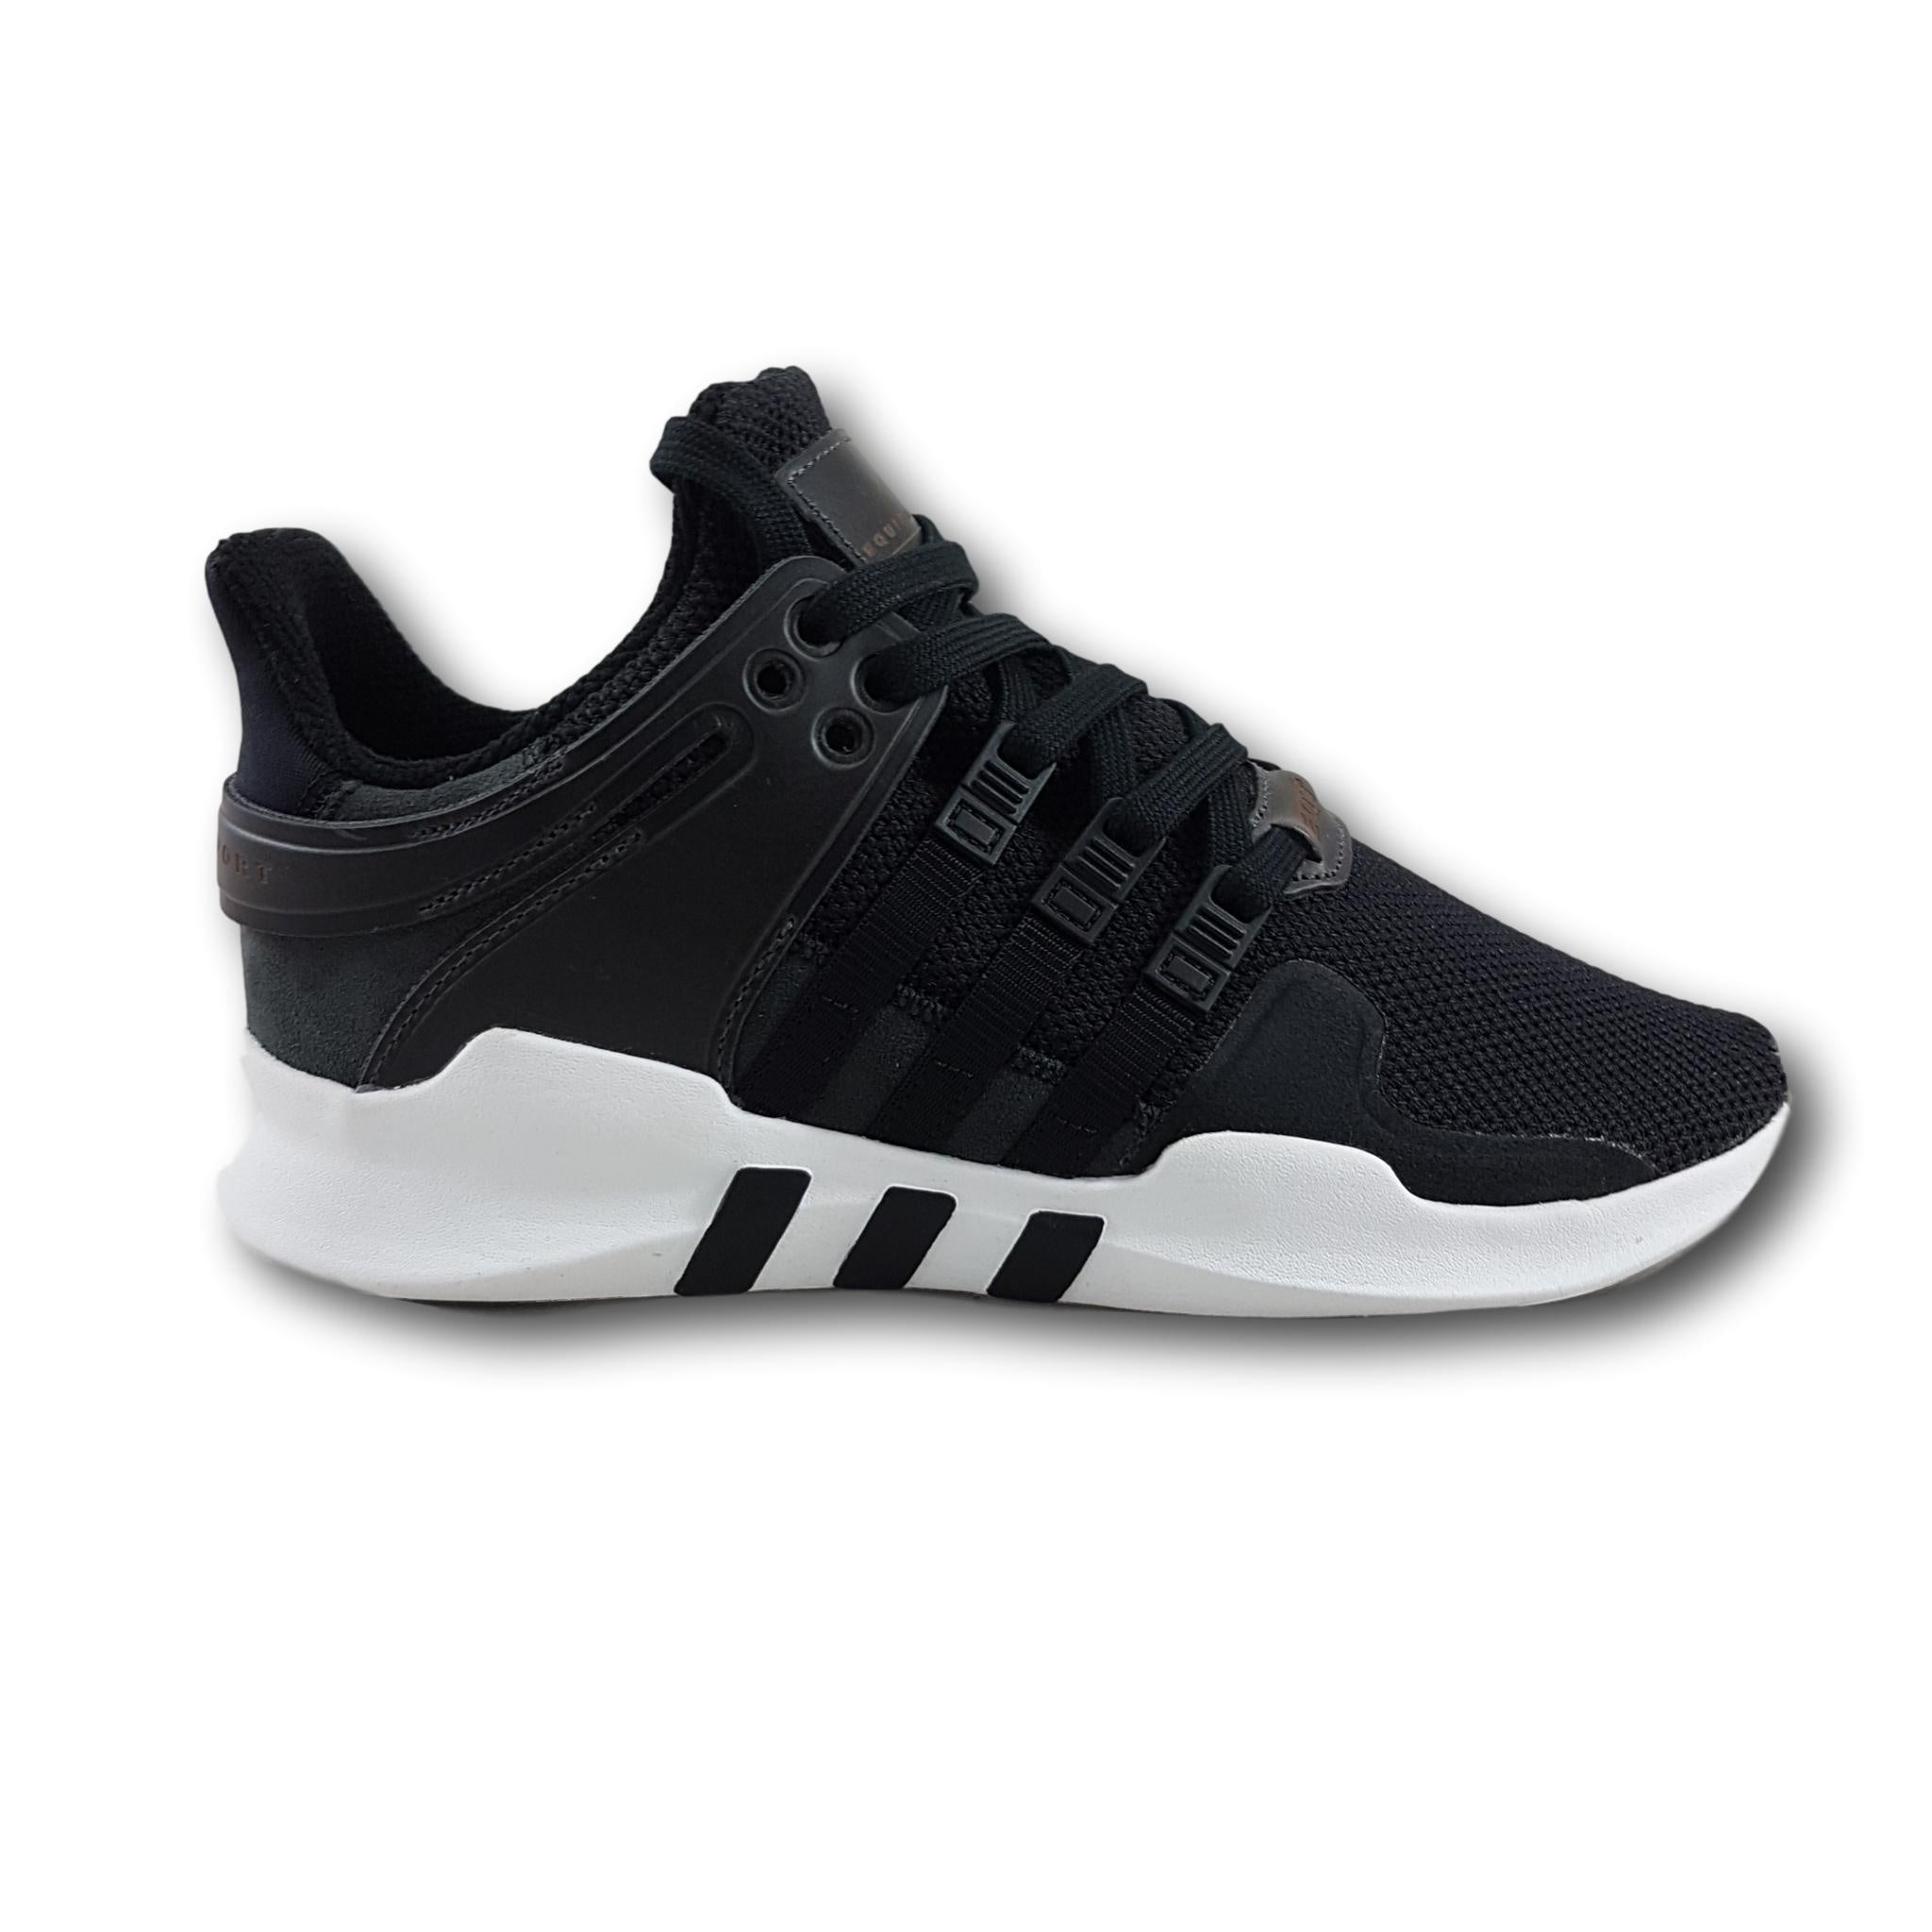 size 40 2bf0e f8be9 Adidas EQT Support ADV Black/Black/White